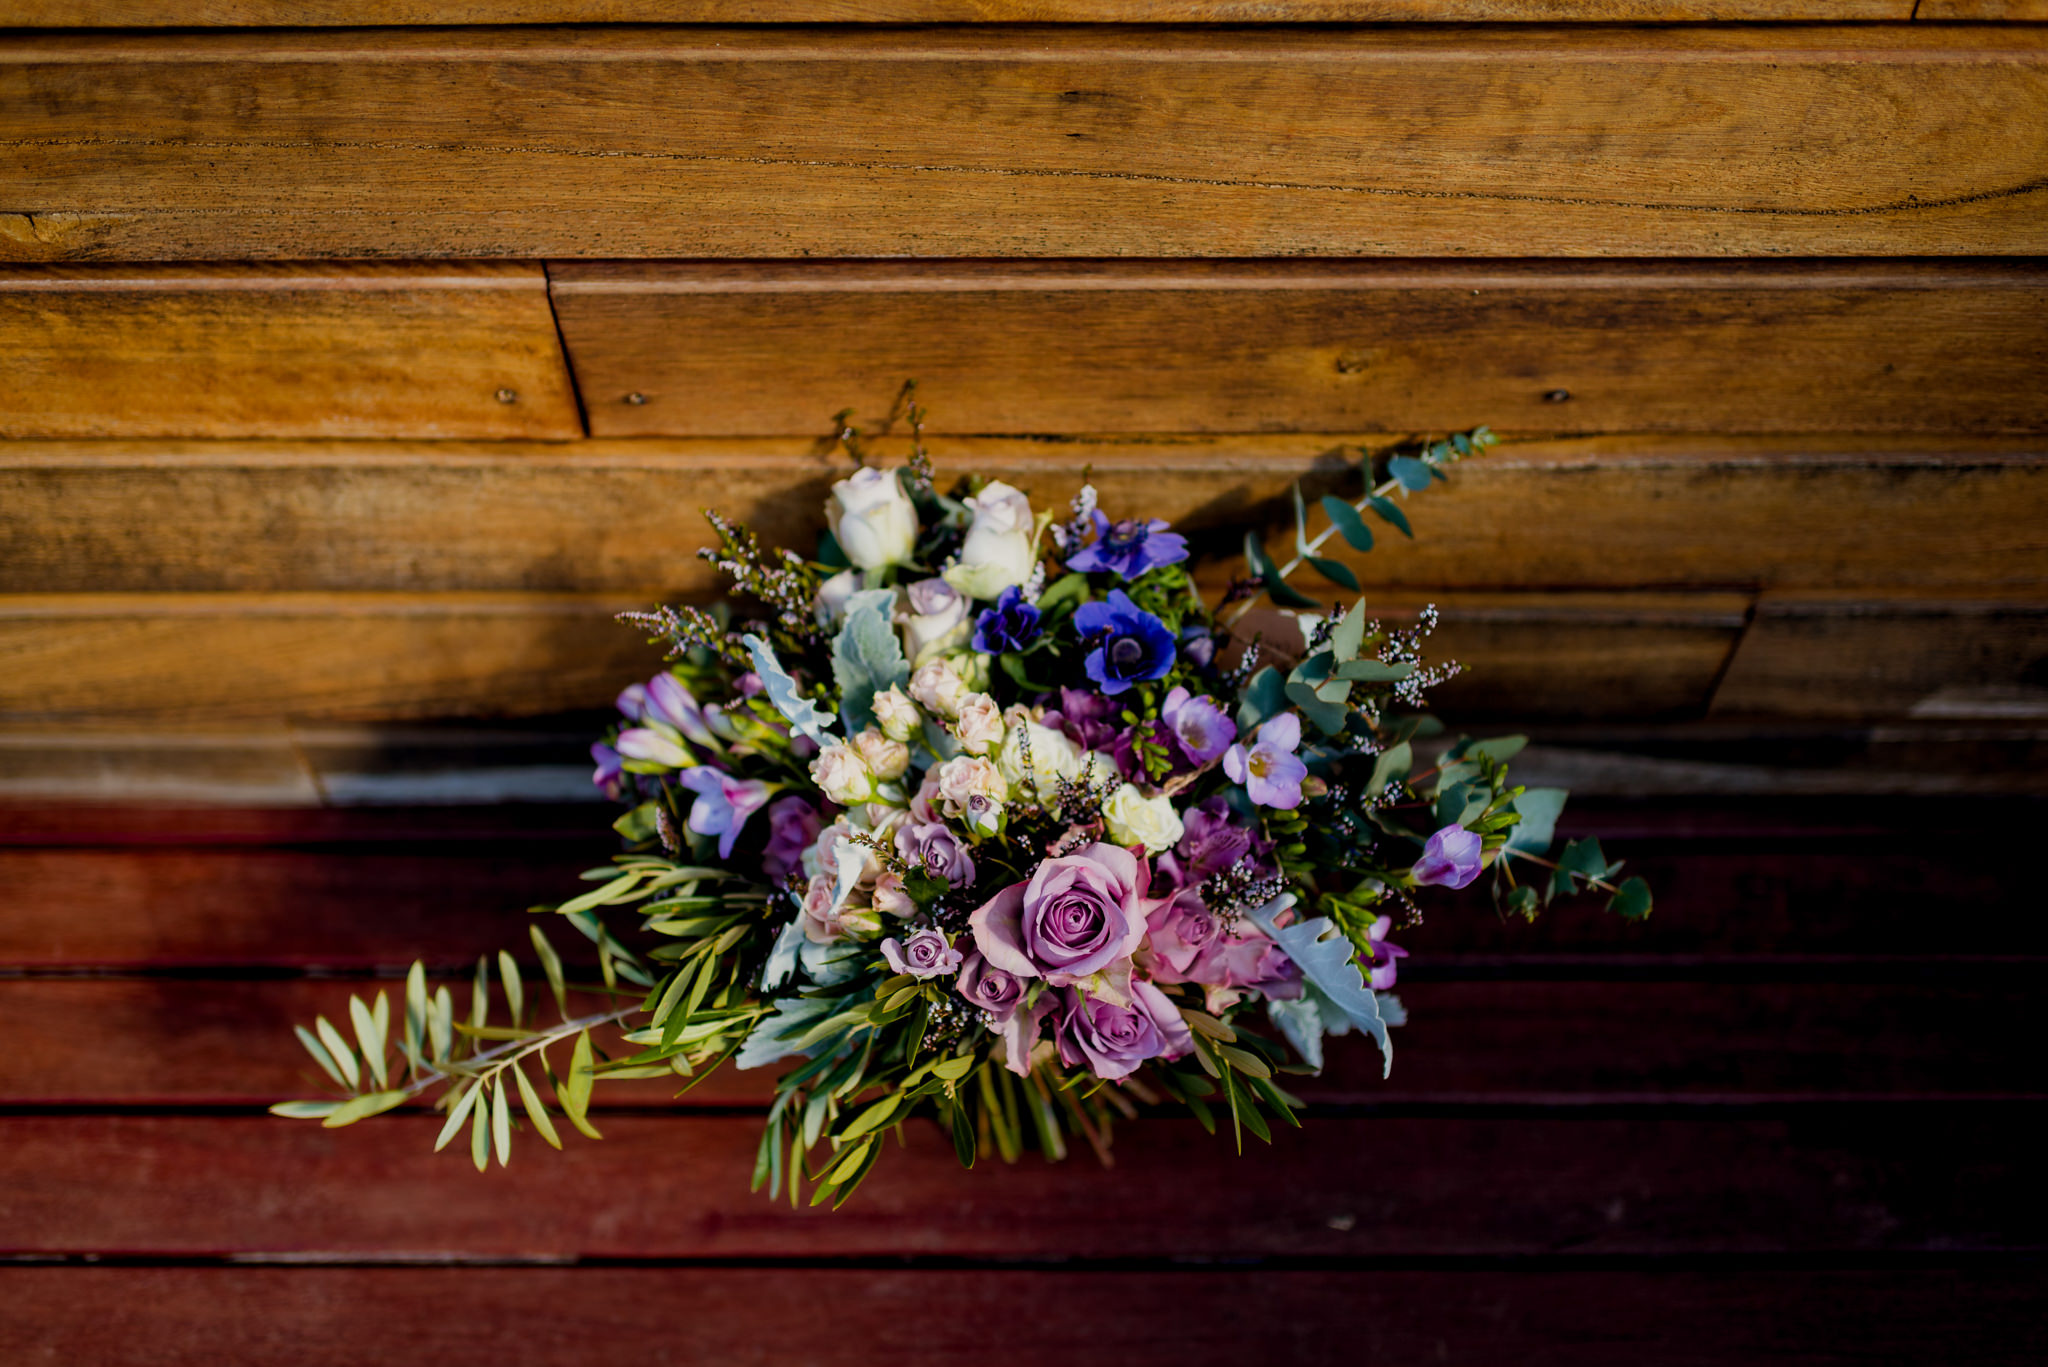 Purple flowers in a wedding bouquet placed on a wooden floor